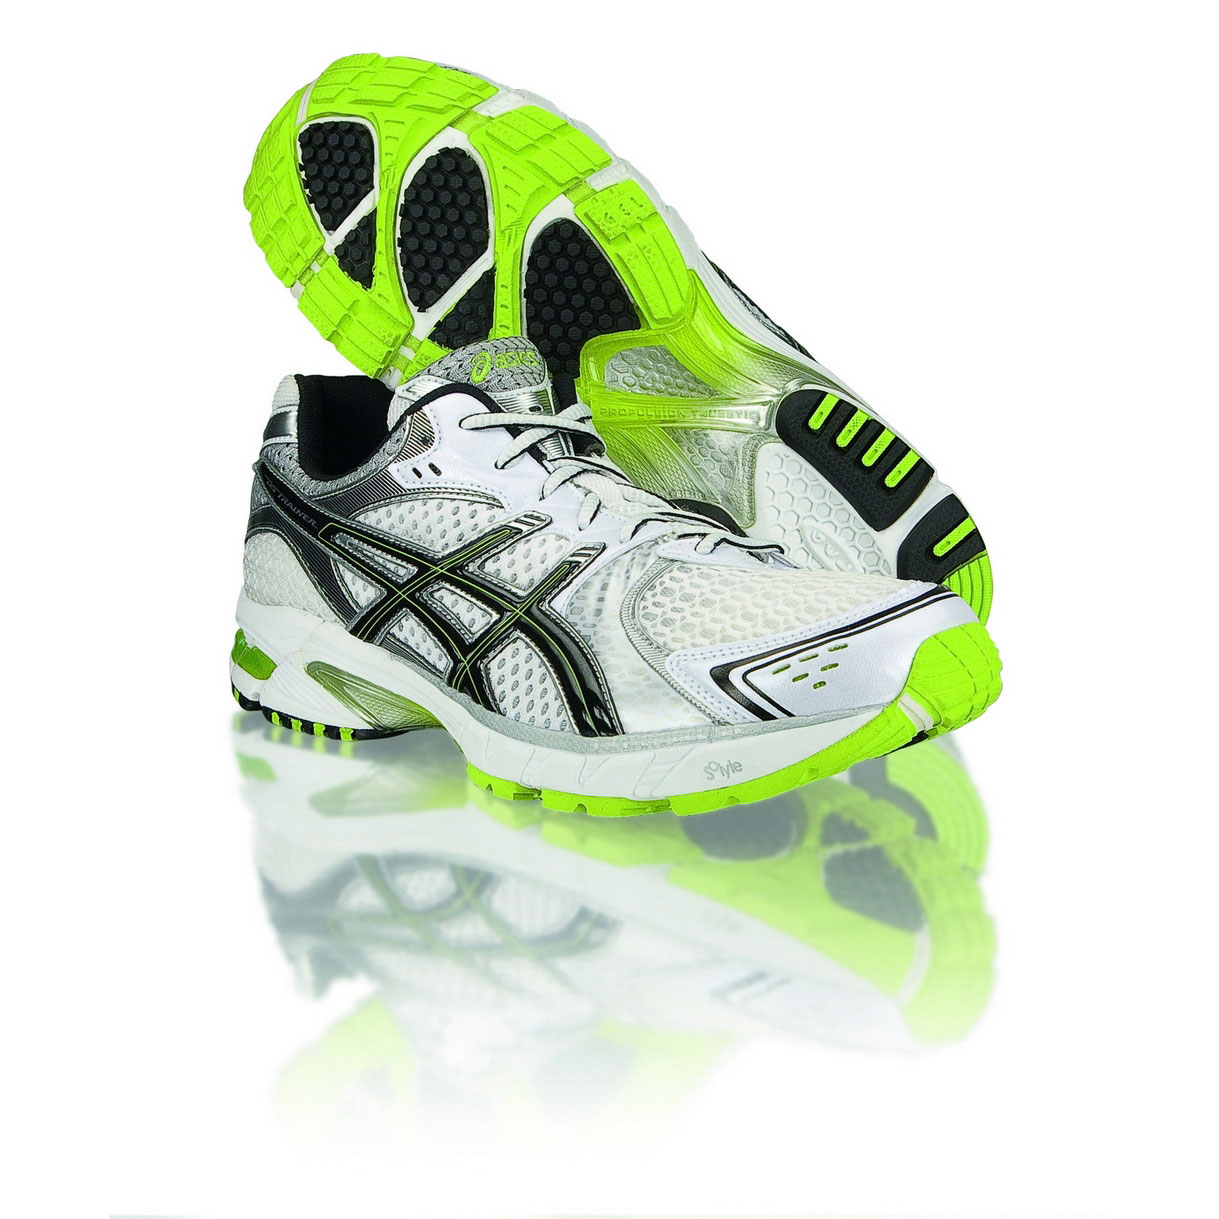 official photos 4ec50 ccb09 Купить марафонки ASICS GEL-DS TRAINER 15 (T014N-0190) в ...